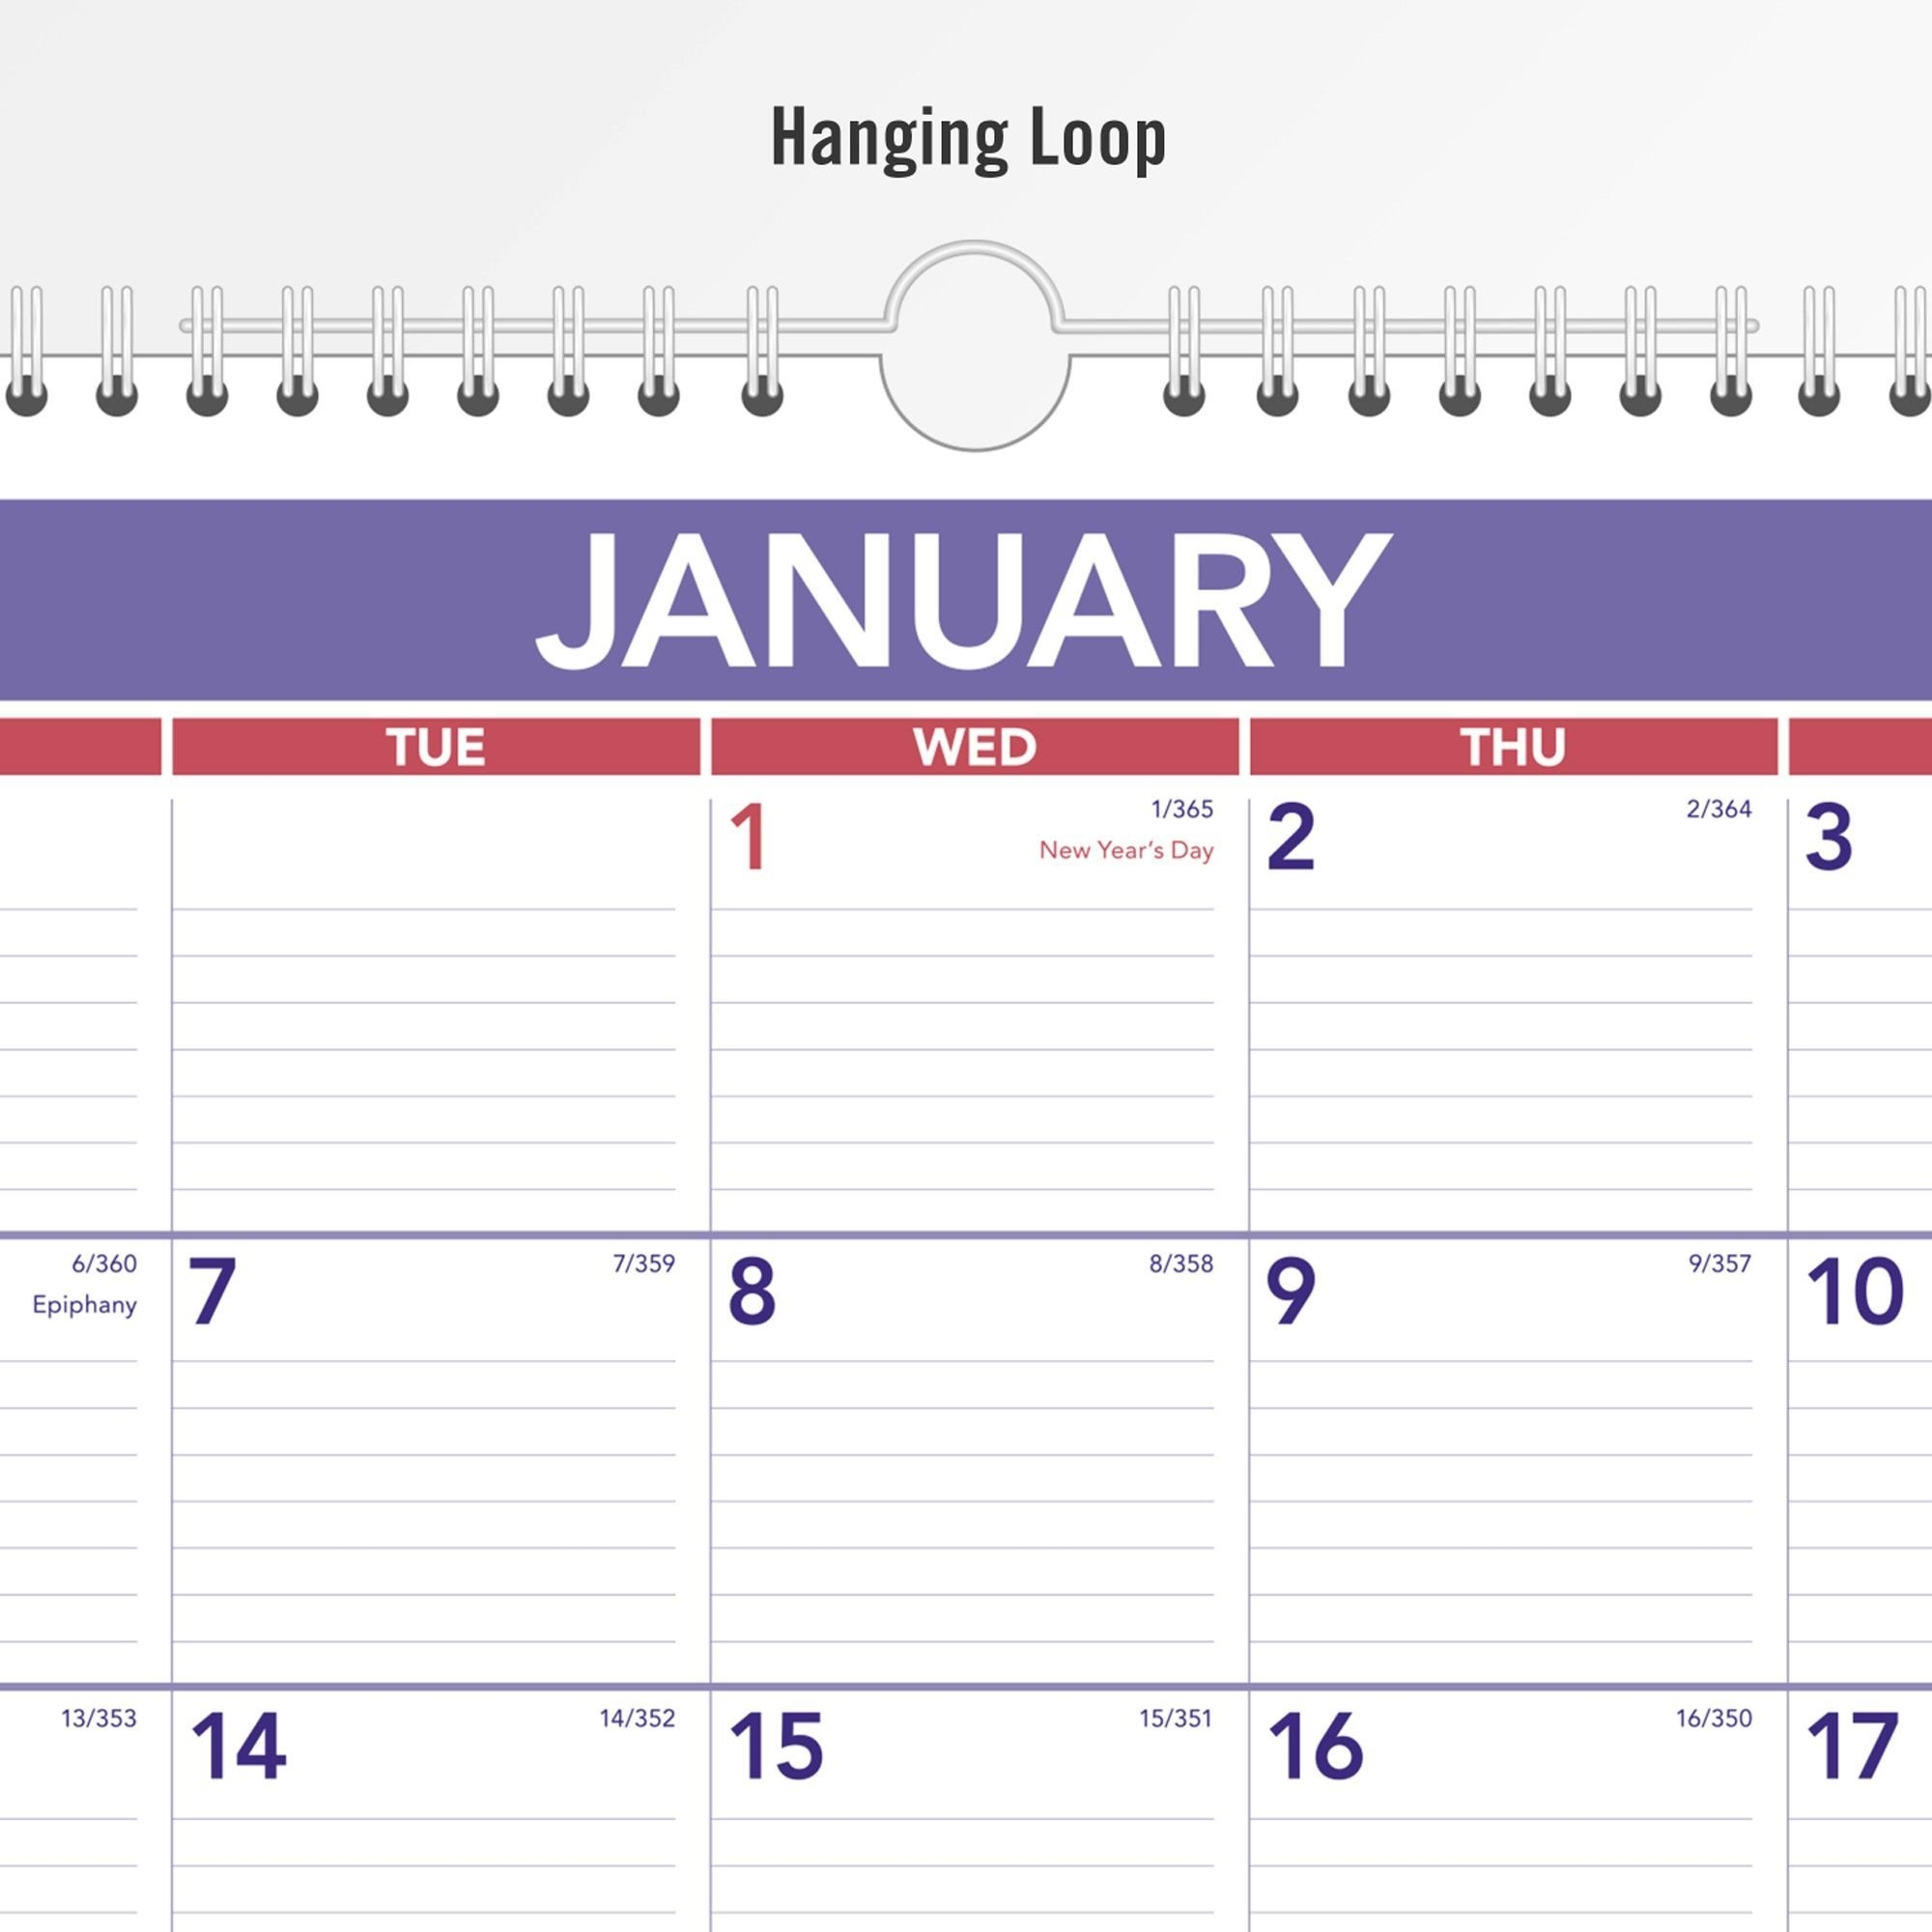 2021 Calendar With Date Boxes And Abbreviated Holidays - Example Calendar Printable with Julian Calendar 2021 Free Printable Photo